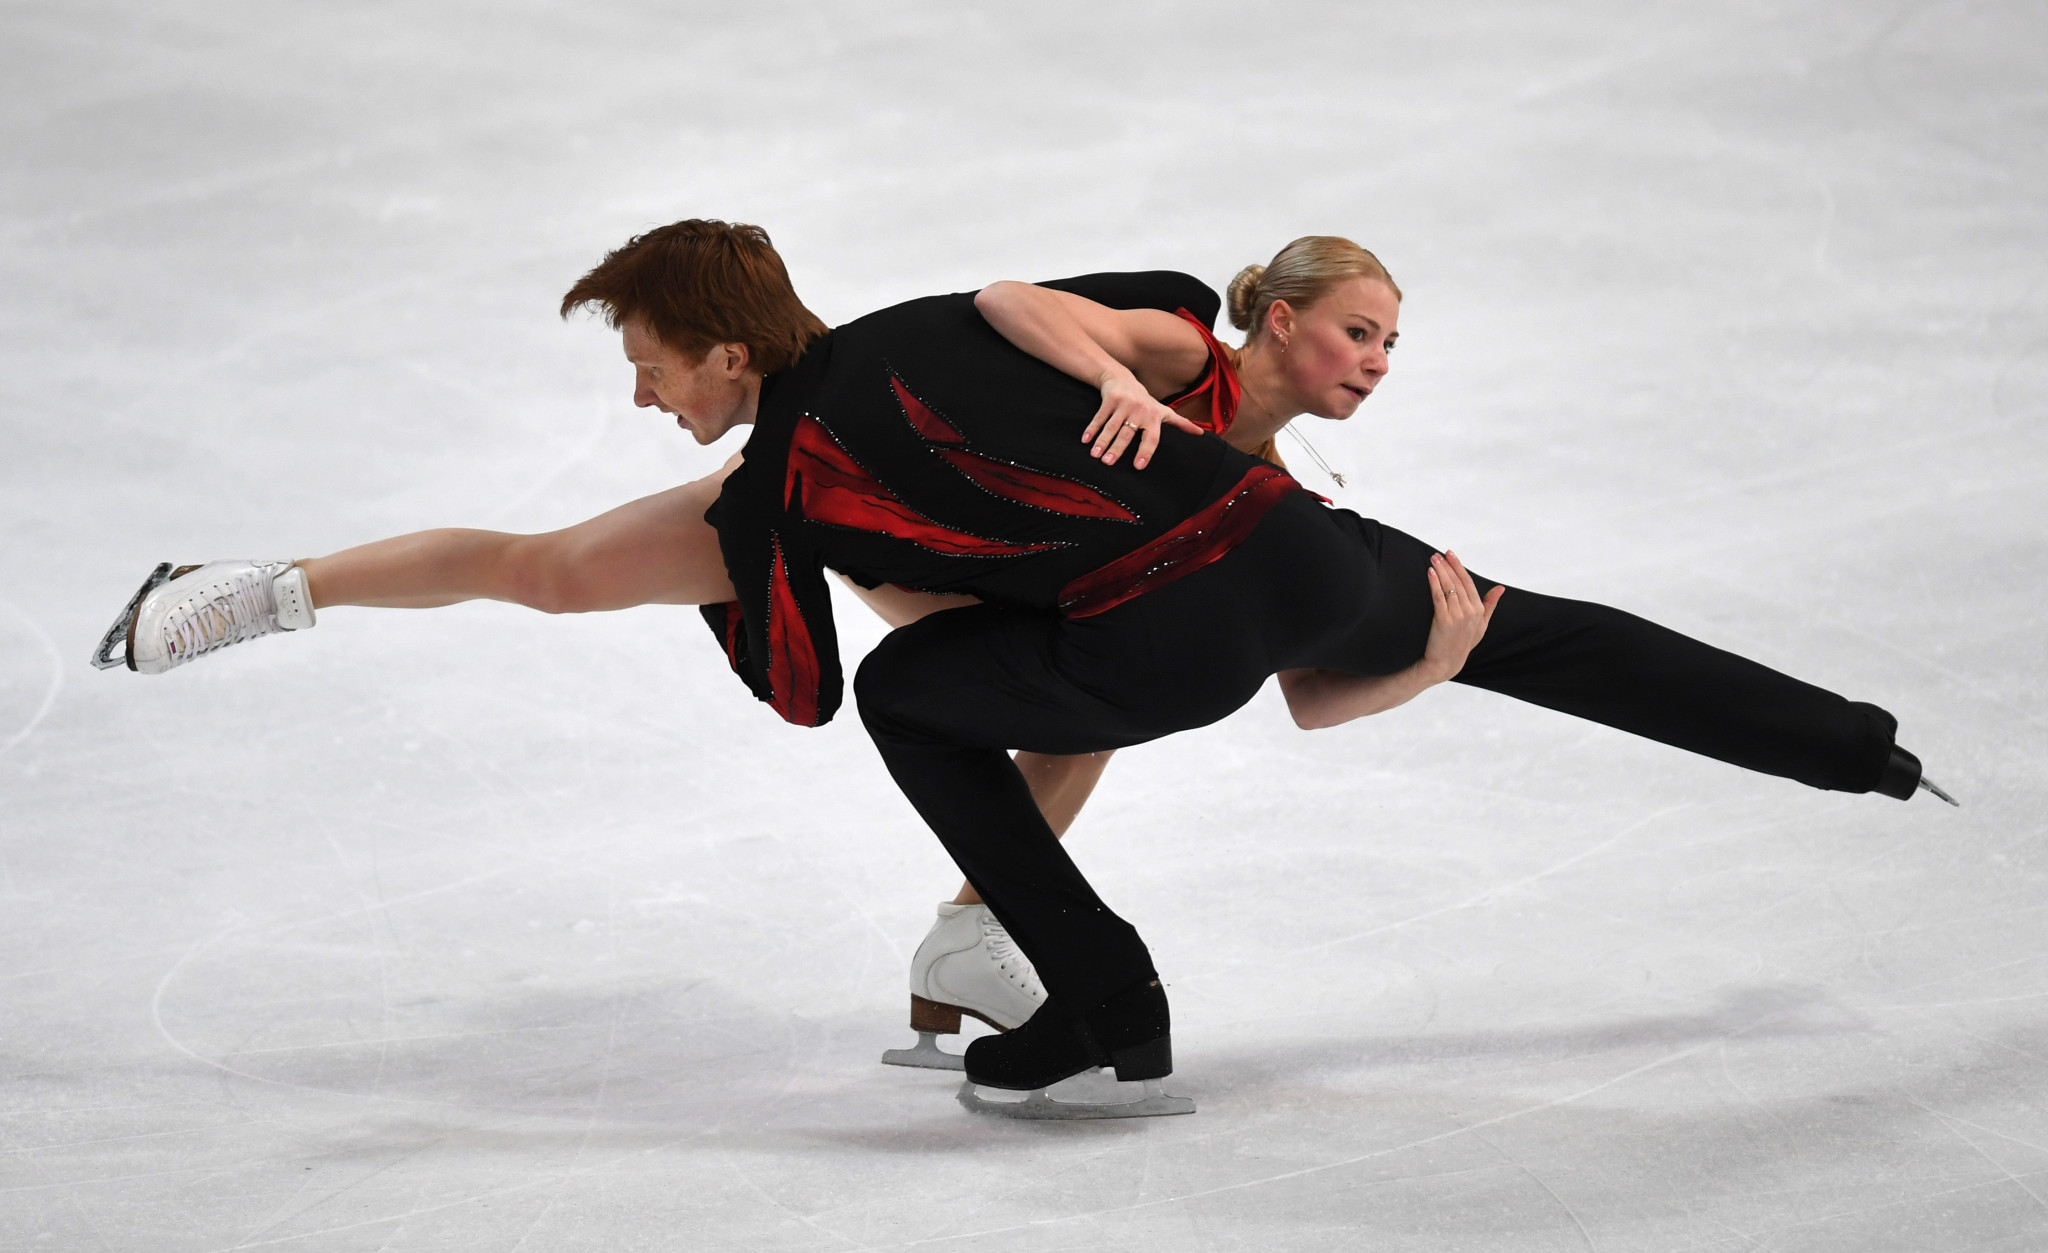 Evgenia Tarasova and Vladimir Morozov of Russia claimed the lead in the pairs short programme ©Getty Images